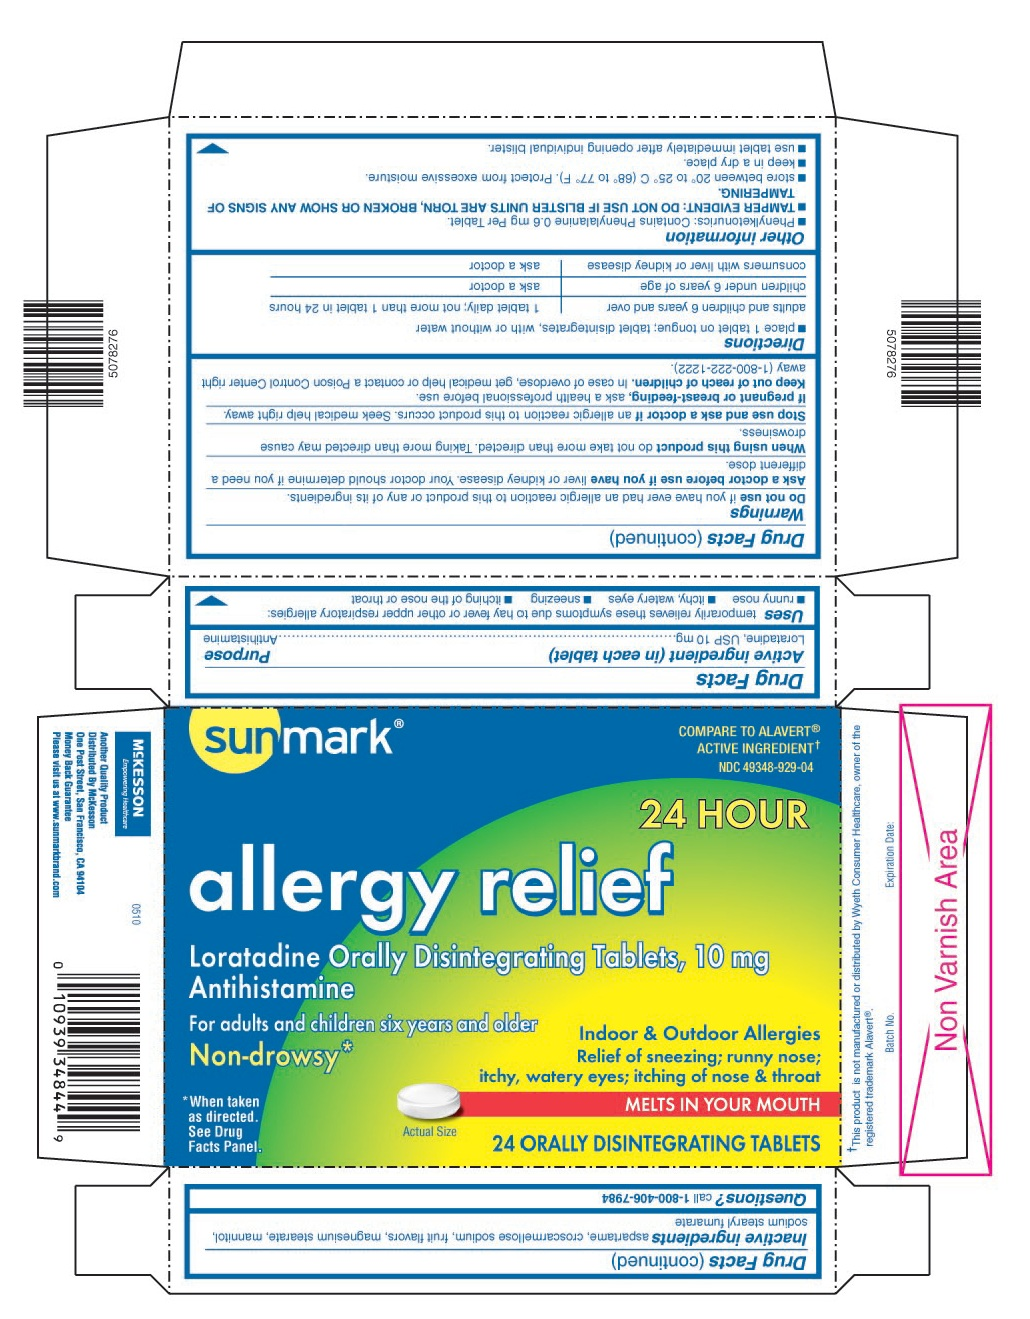 This is the 24 count blister carton label for Sunmark Loratadine ODT (Alavert).